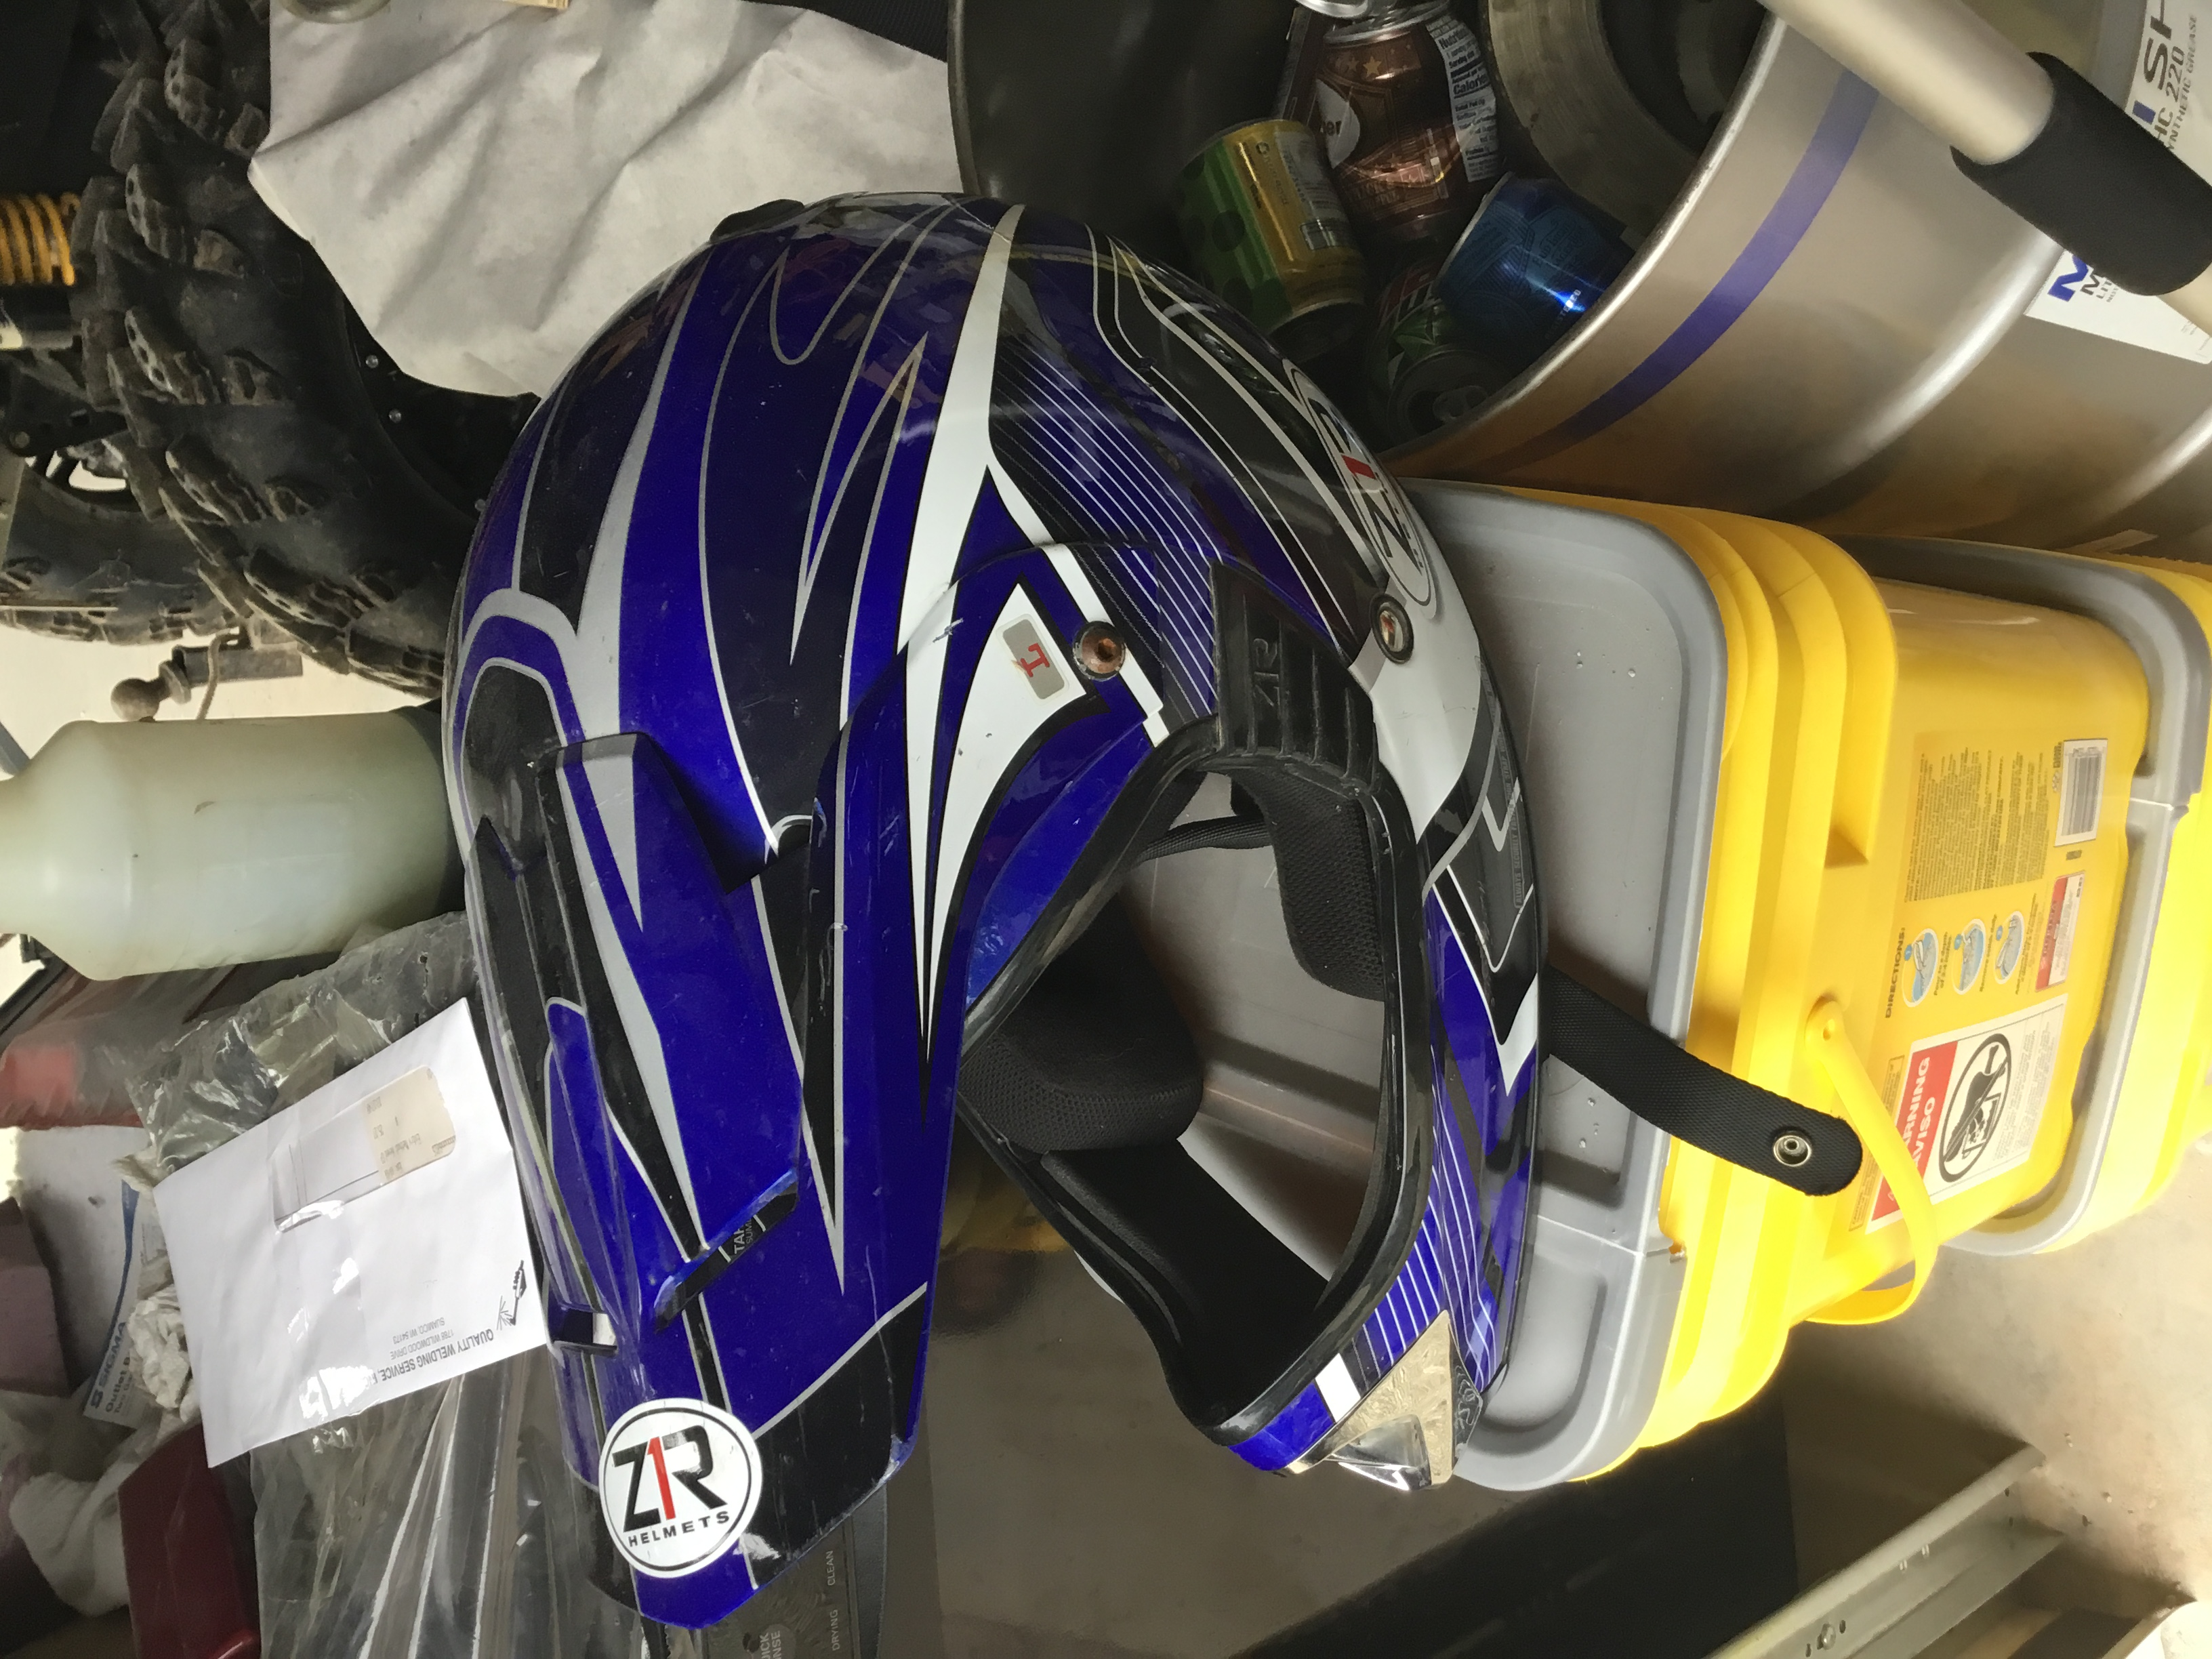 Which helmet is the lesser of two evils? Ed3f6010